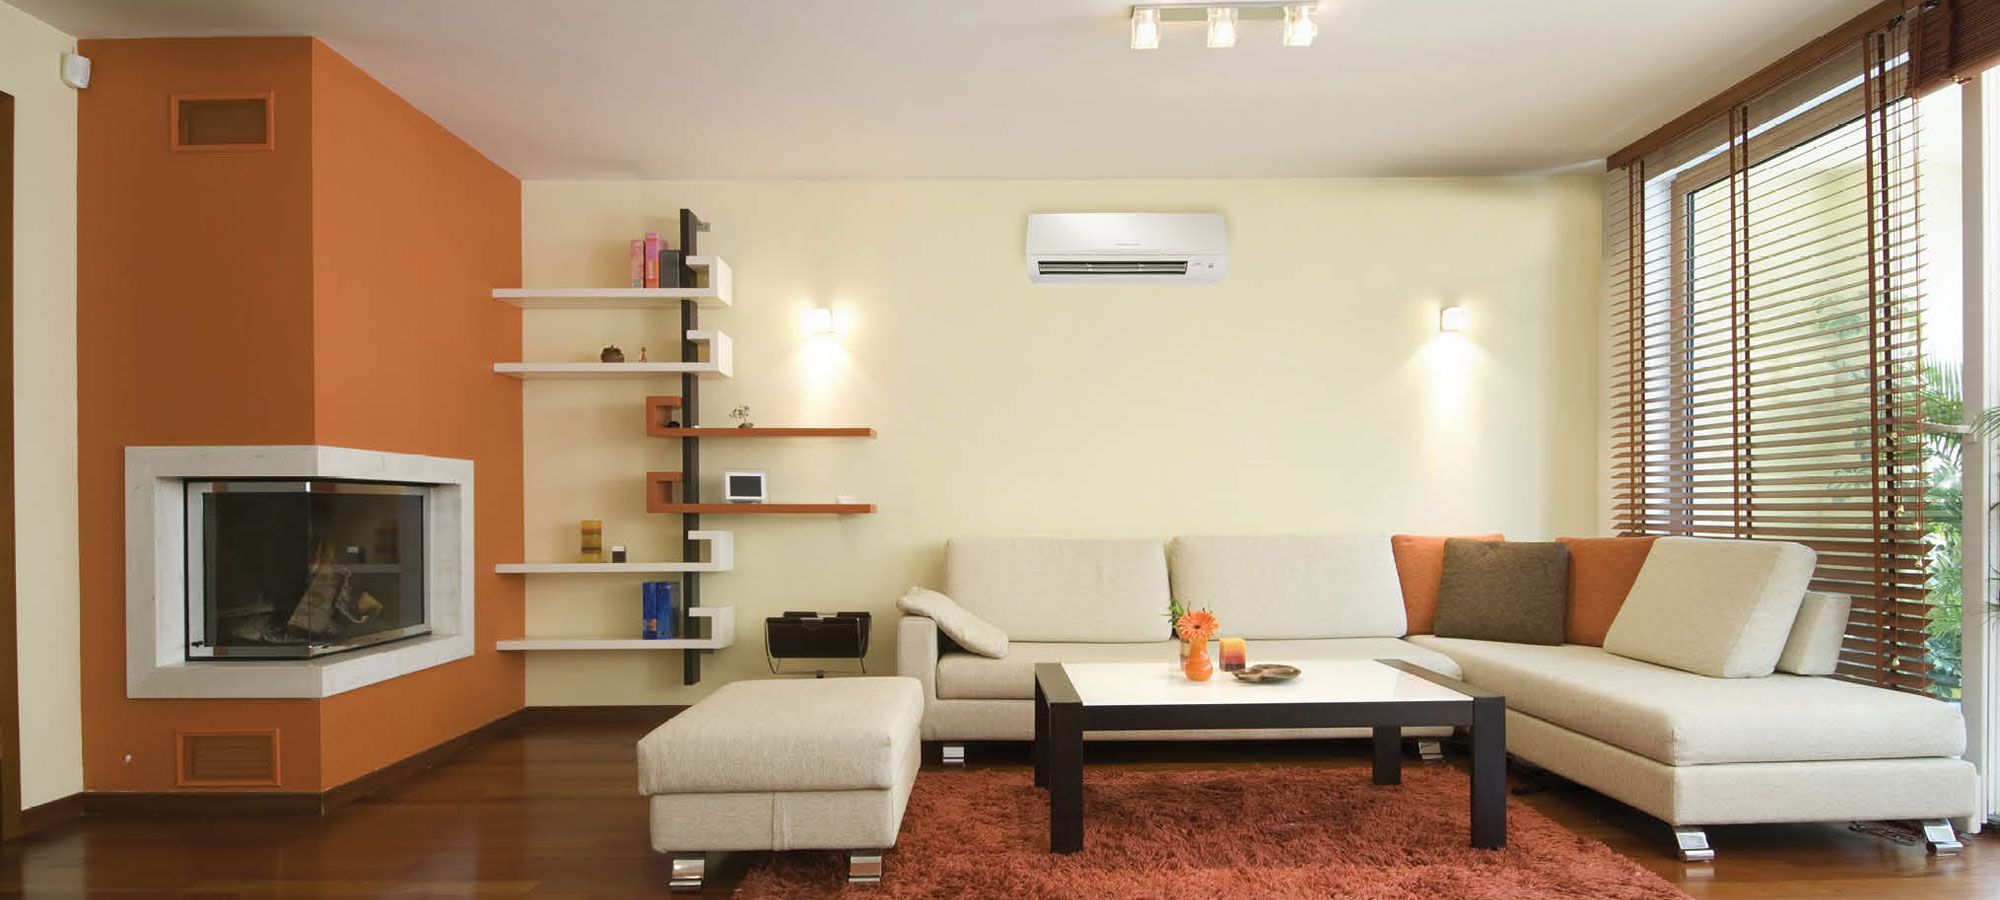 heating cools air philadelphia for best mitsubishi ductless and living recognized as width room t the worldwide conditioning systems conditioner name